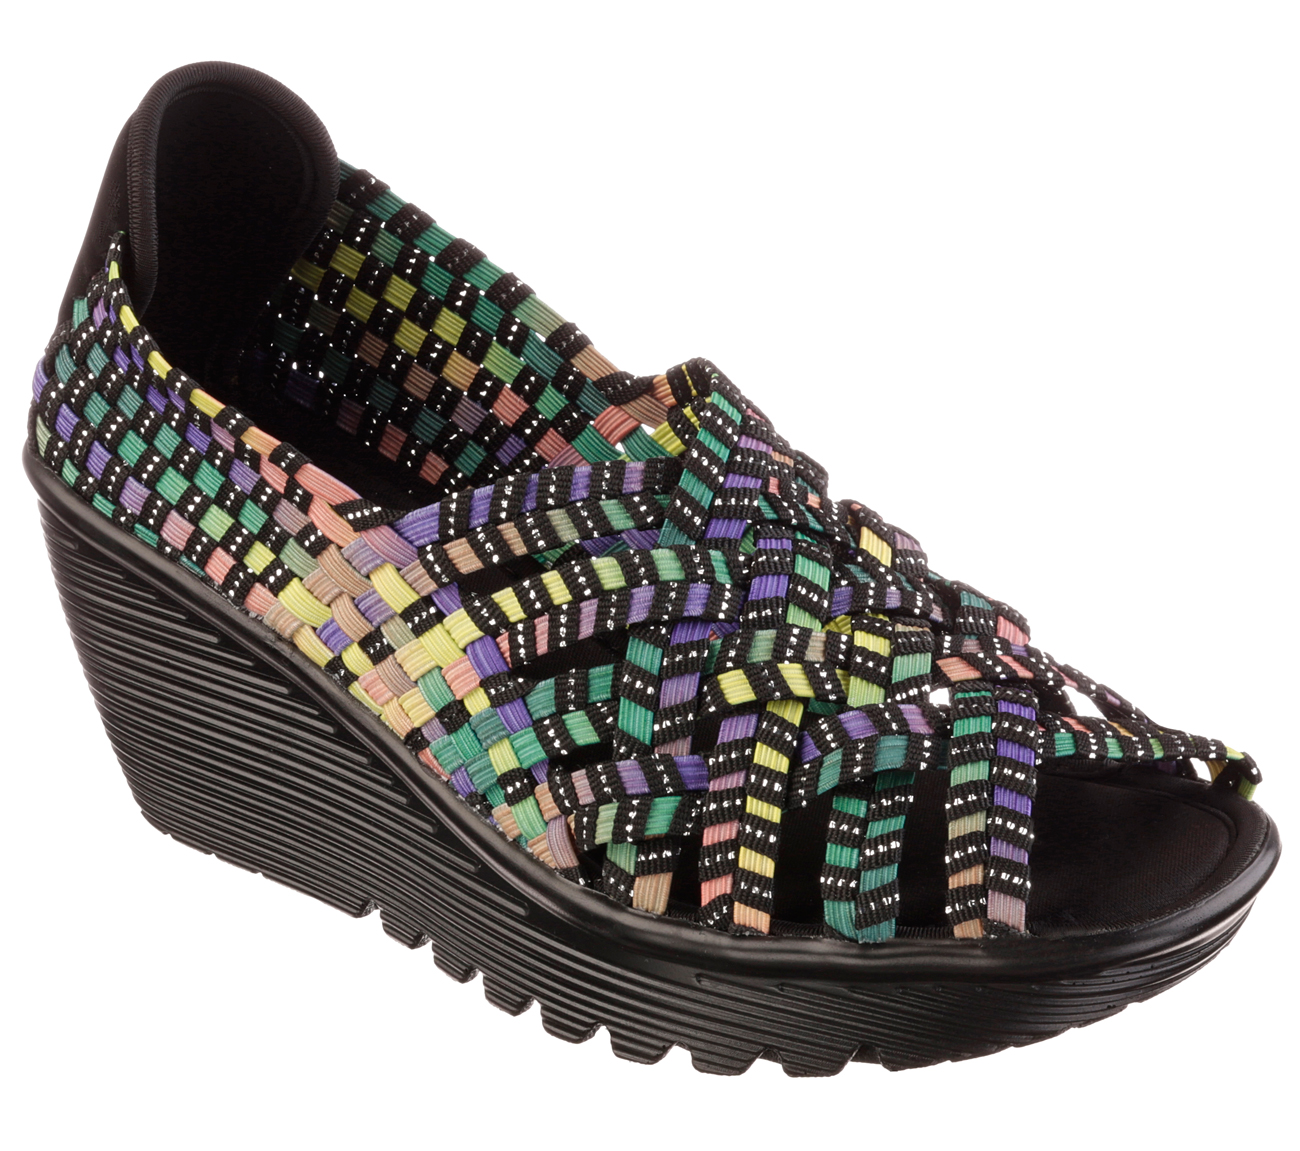 Skechers Multi Color Woven Shoes For Women